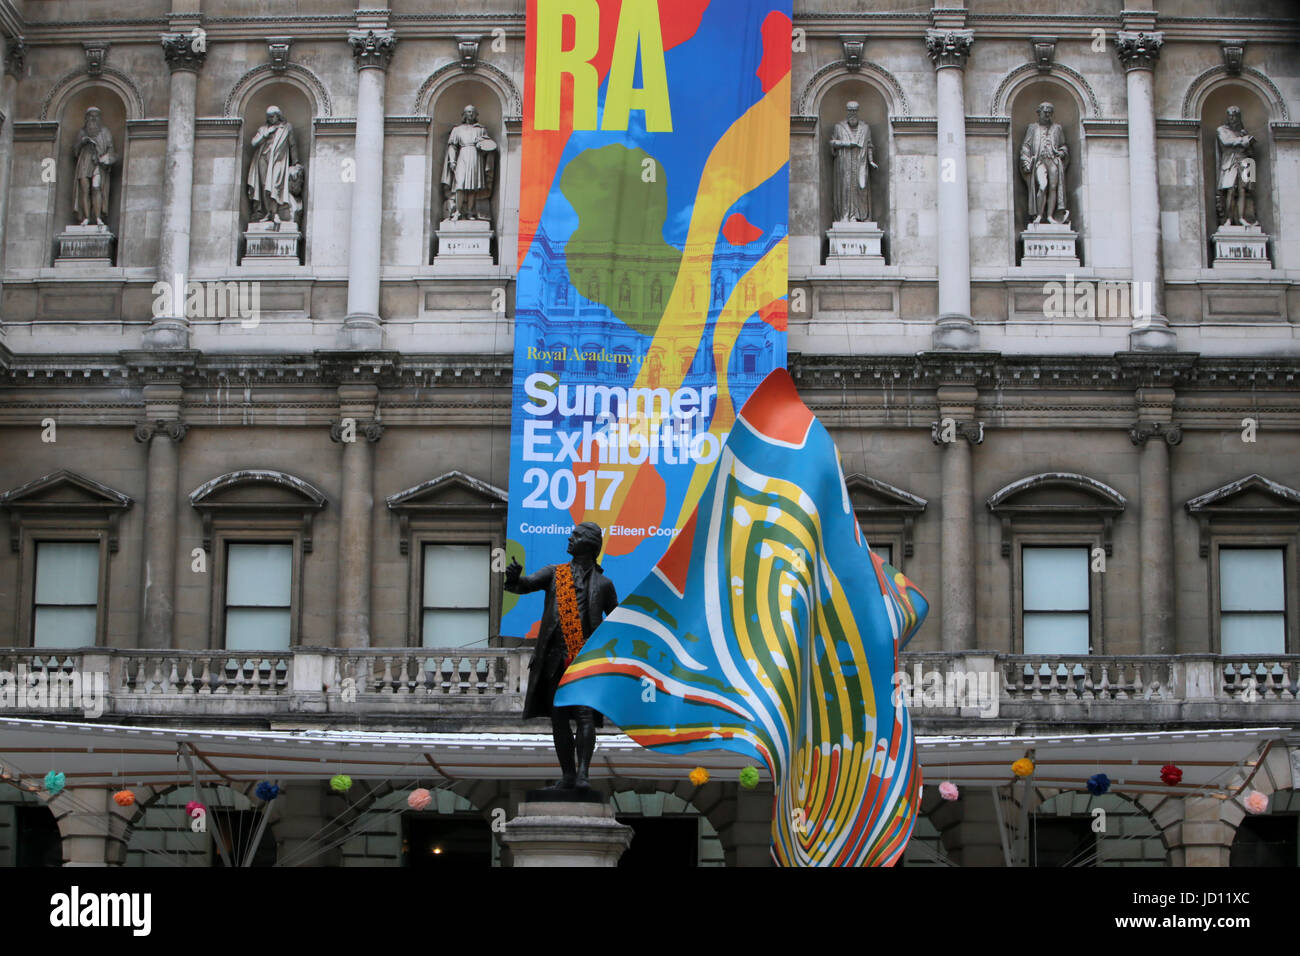 London UK 18 June 2017 The Royal Academy of arts  Summer Exhibition is open@Paul Quezada-Neiman/Alamy Live News Stock Photo